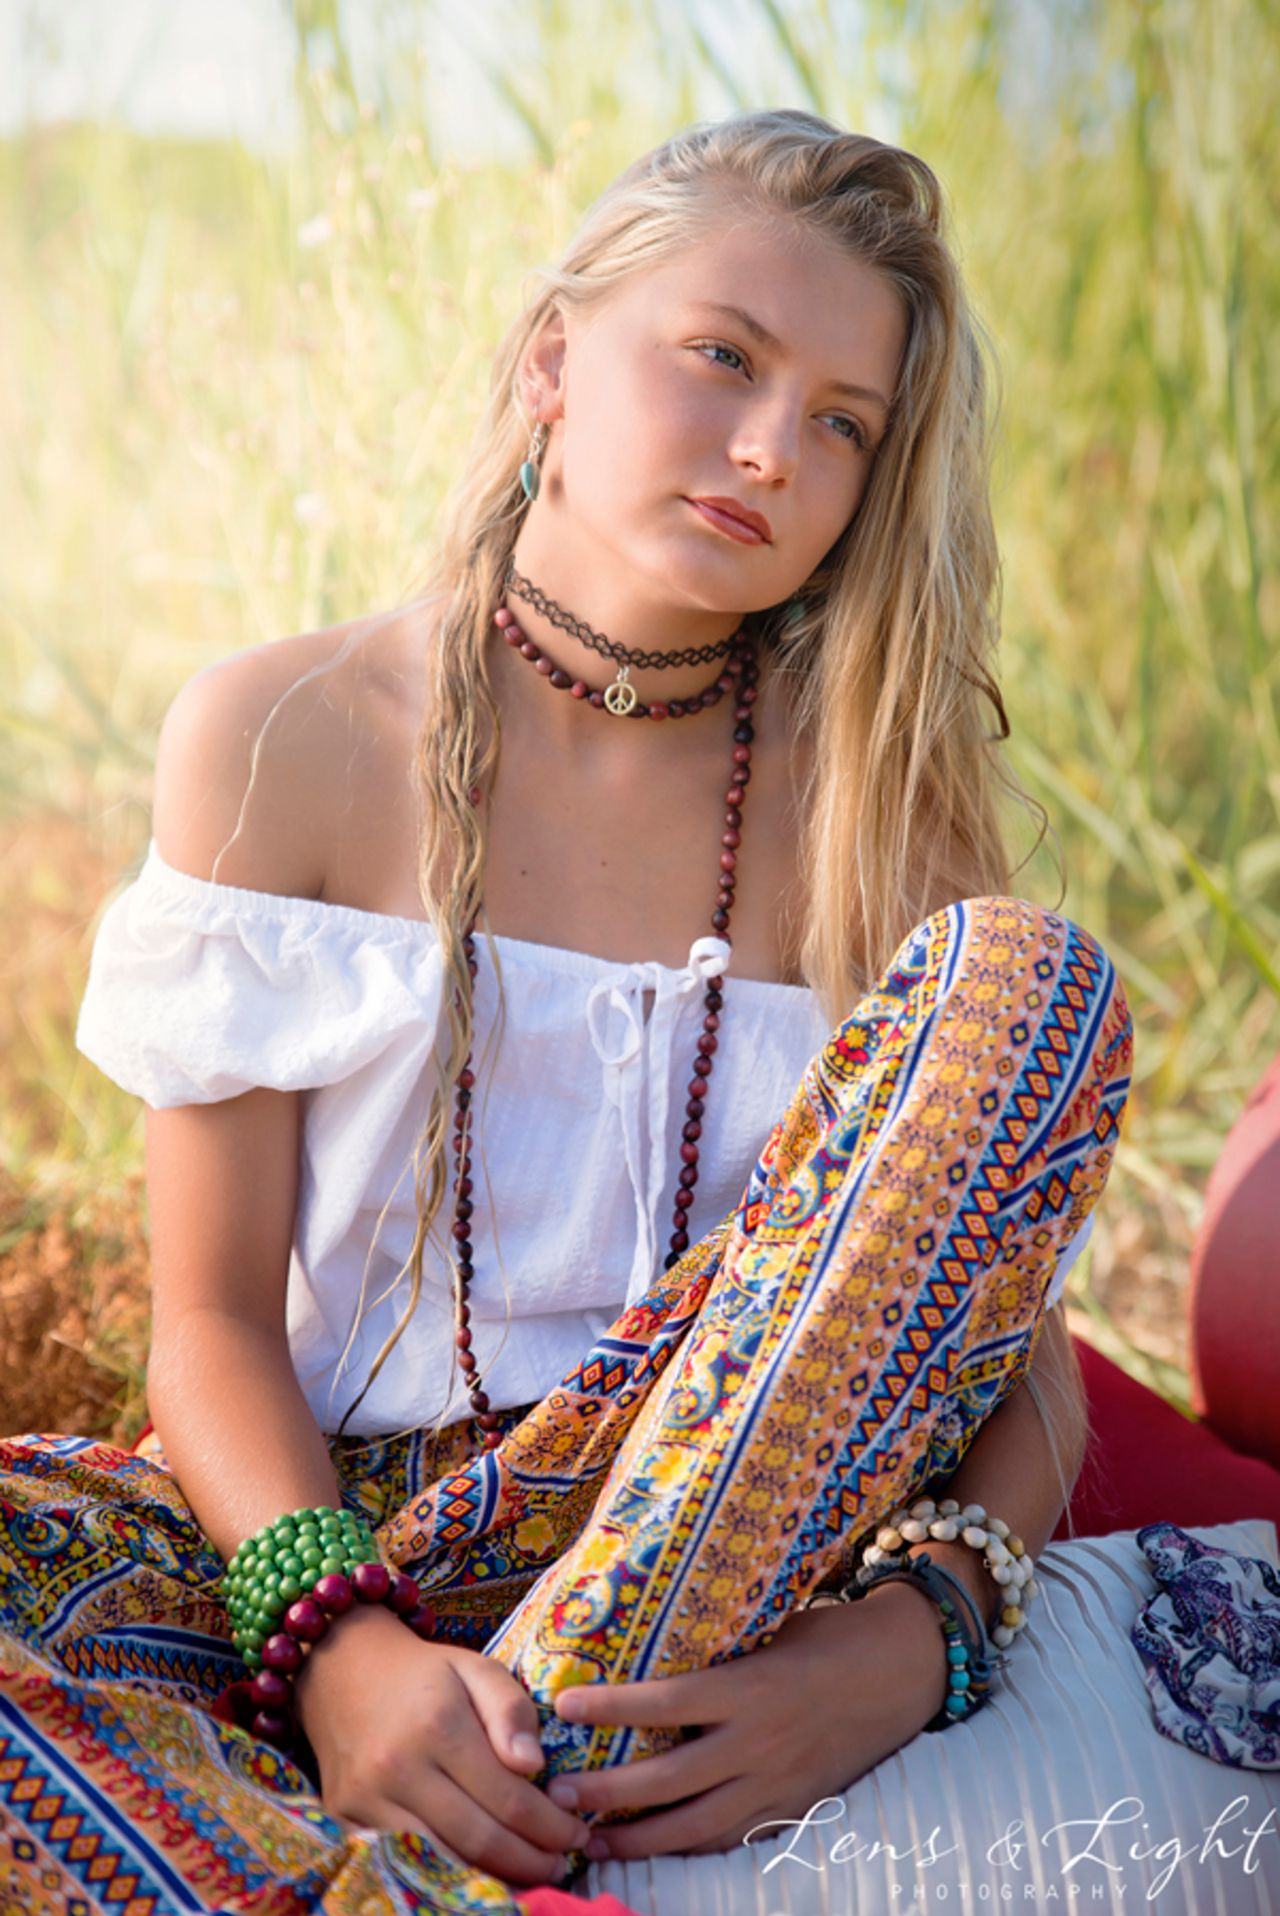 Hippie shoot-Roné-Lens&Light-Resized-0785